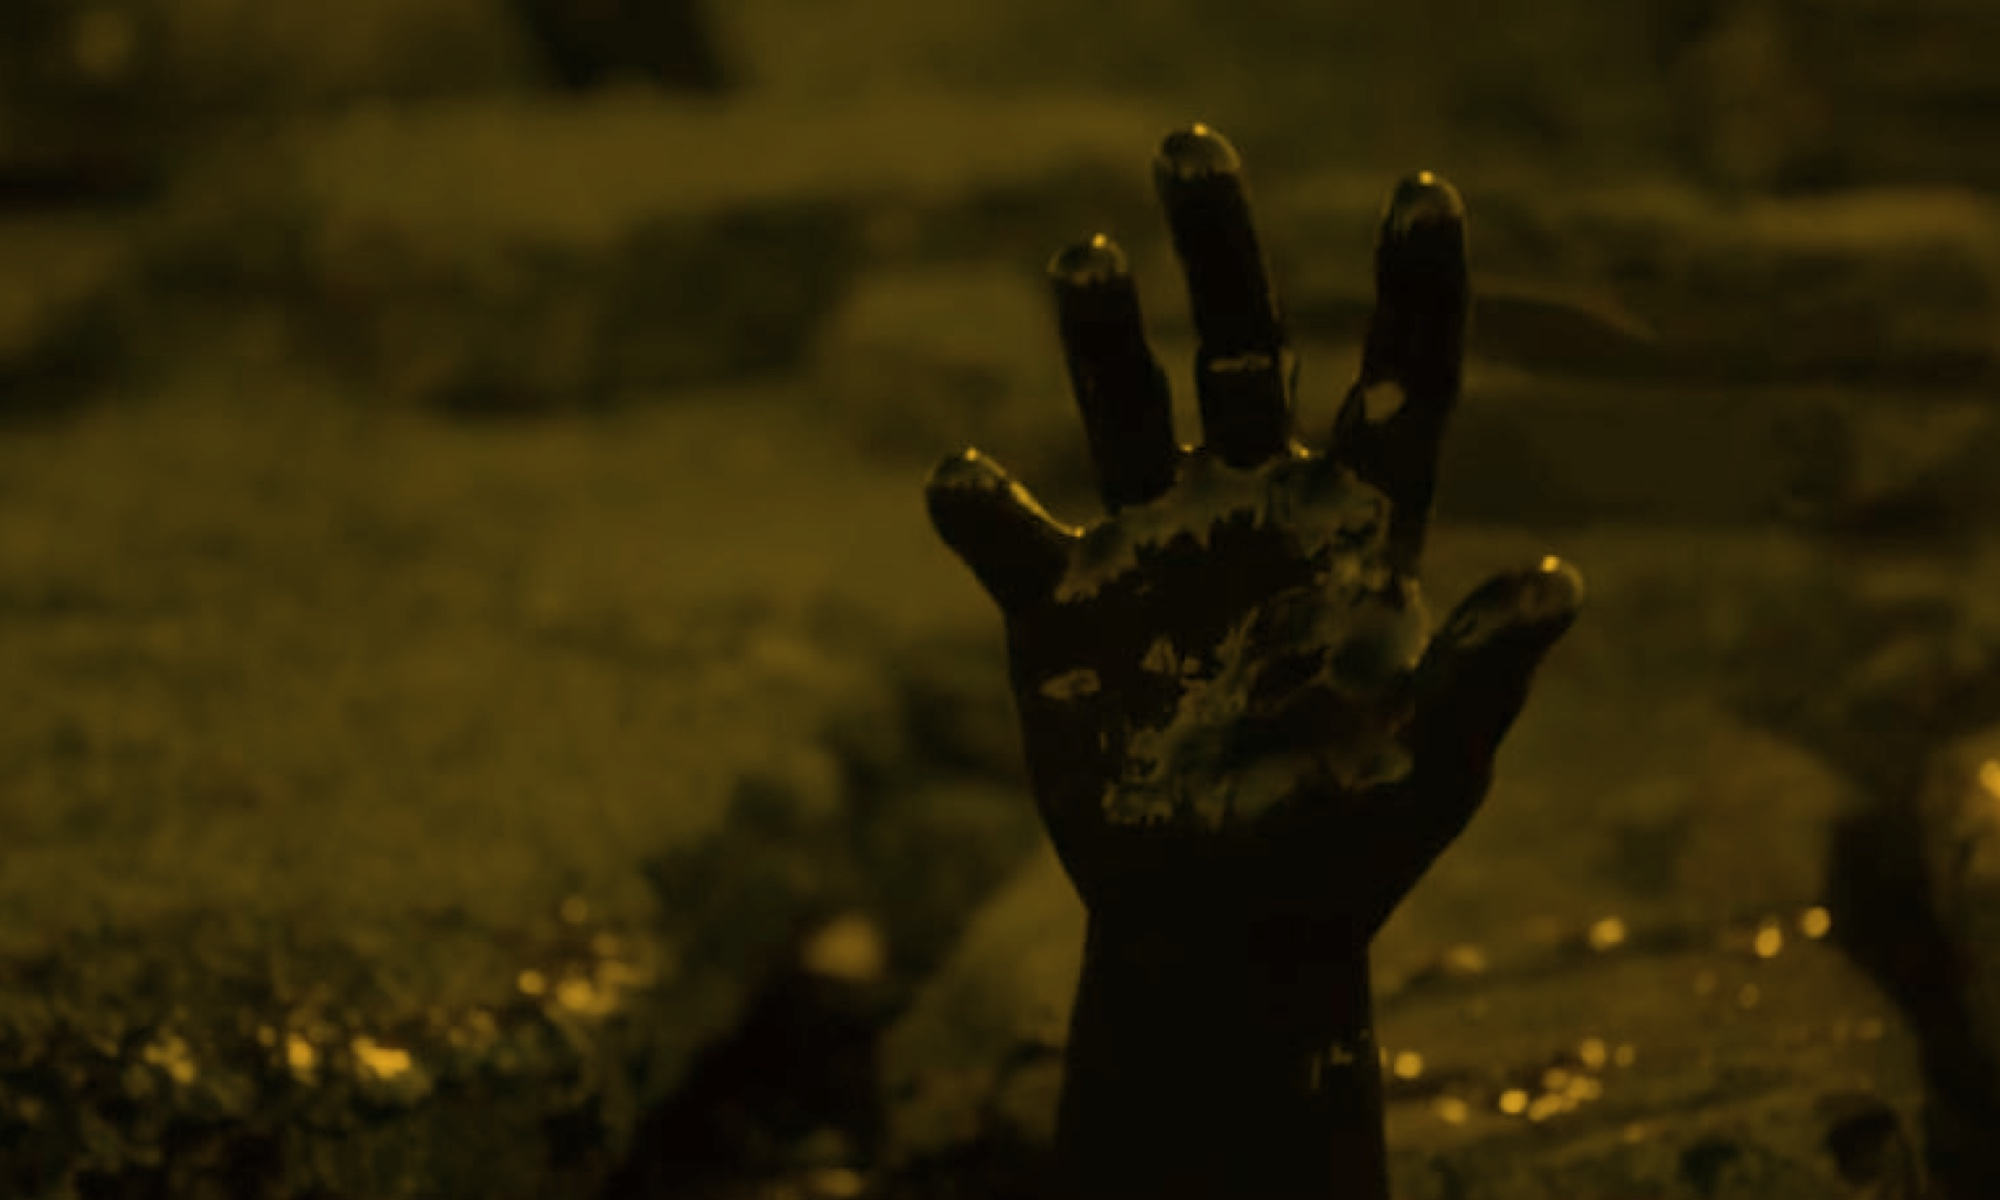 A very dark image of a hand covered in tar reaching out of a pool of tar as if for help or in it's last spasms.